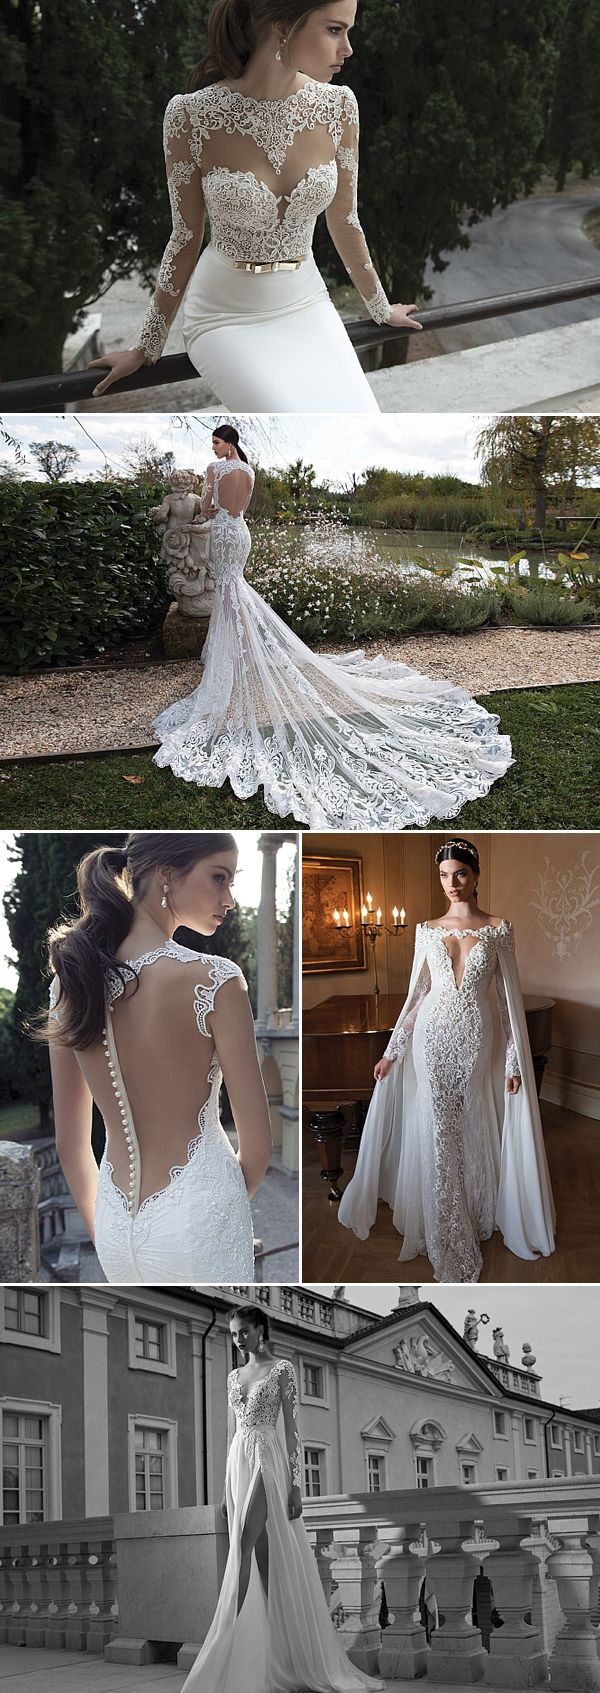 Did you know Israeli designers make some of the most gorgeous, jaw-droppingly beautiful wedding dresses you will ever lay eyes on? Wedding dresses have becoming bolder and sexier over the years and it seems Israel's designers are leading the way with illusion details, bare backs, tight rears, sheer panels, and plunging necklines. Here comes our …